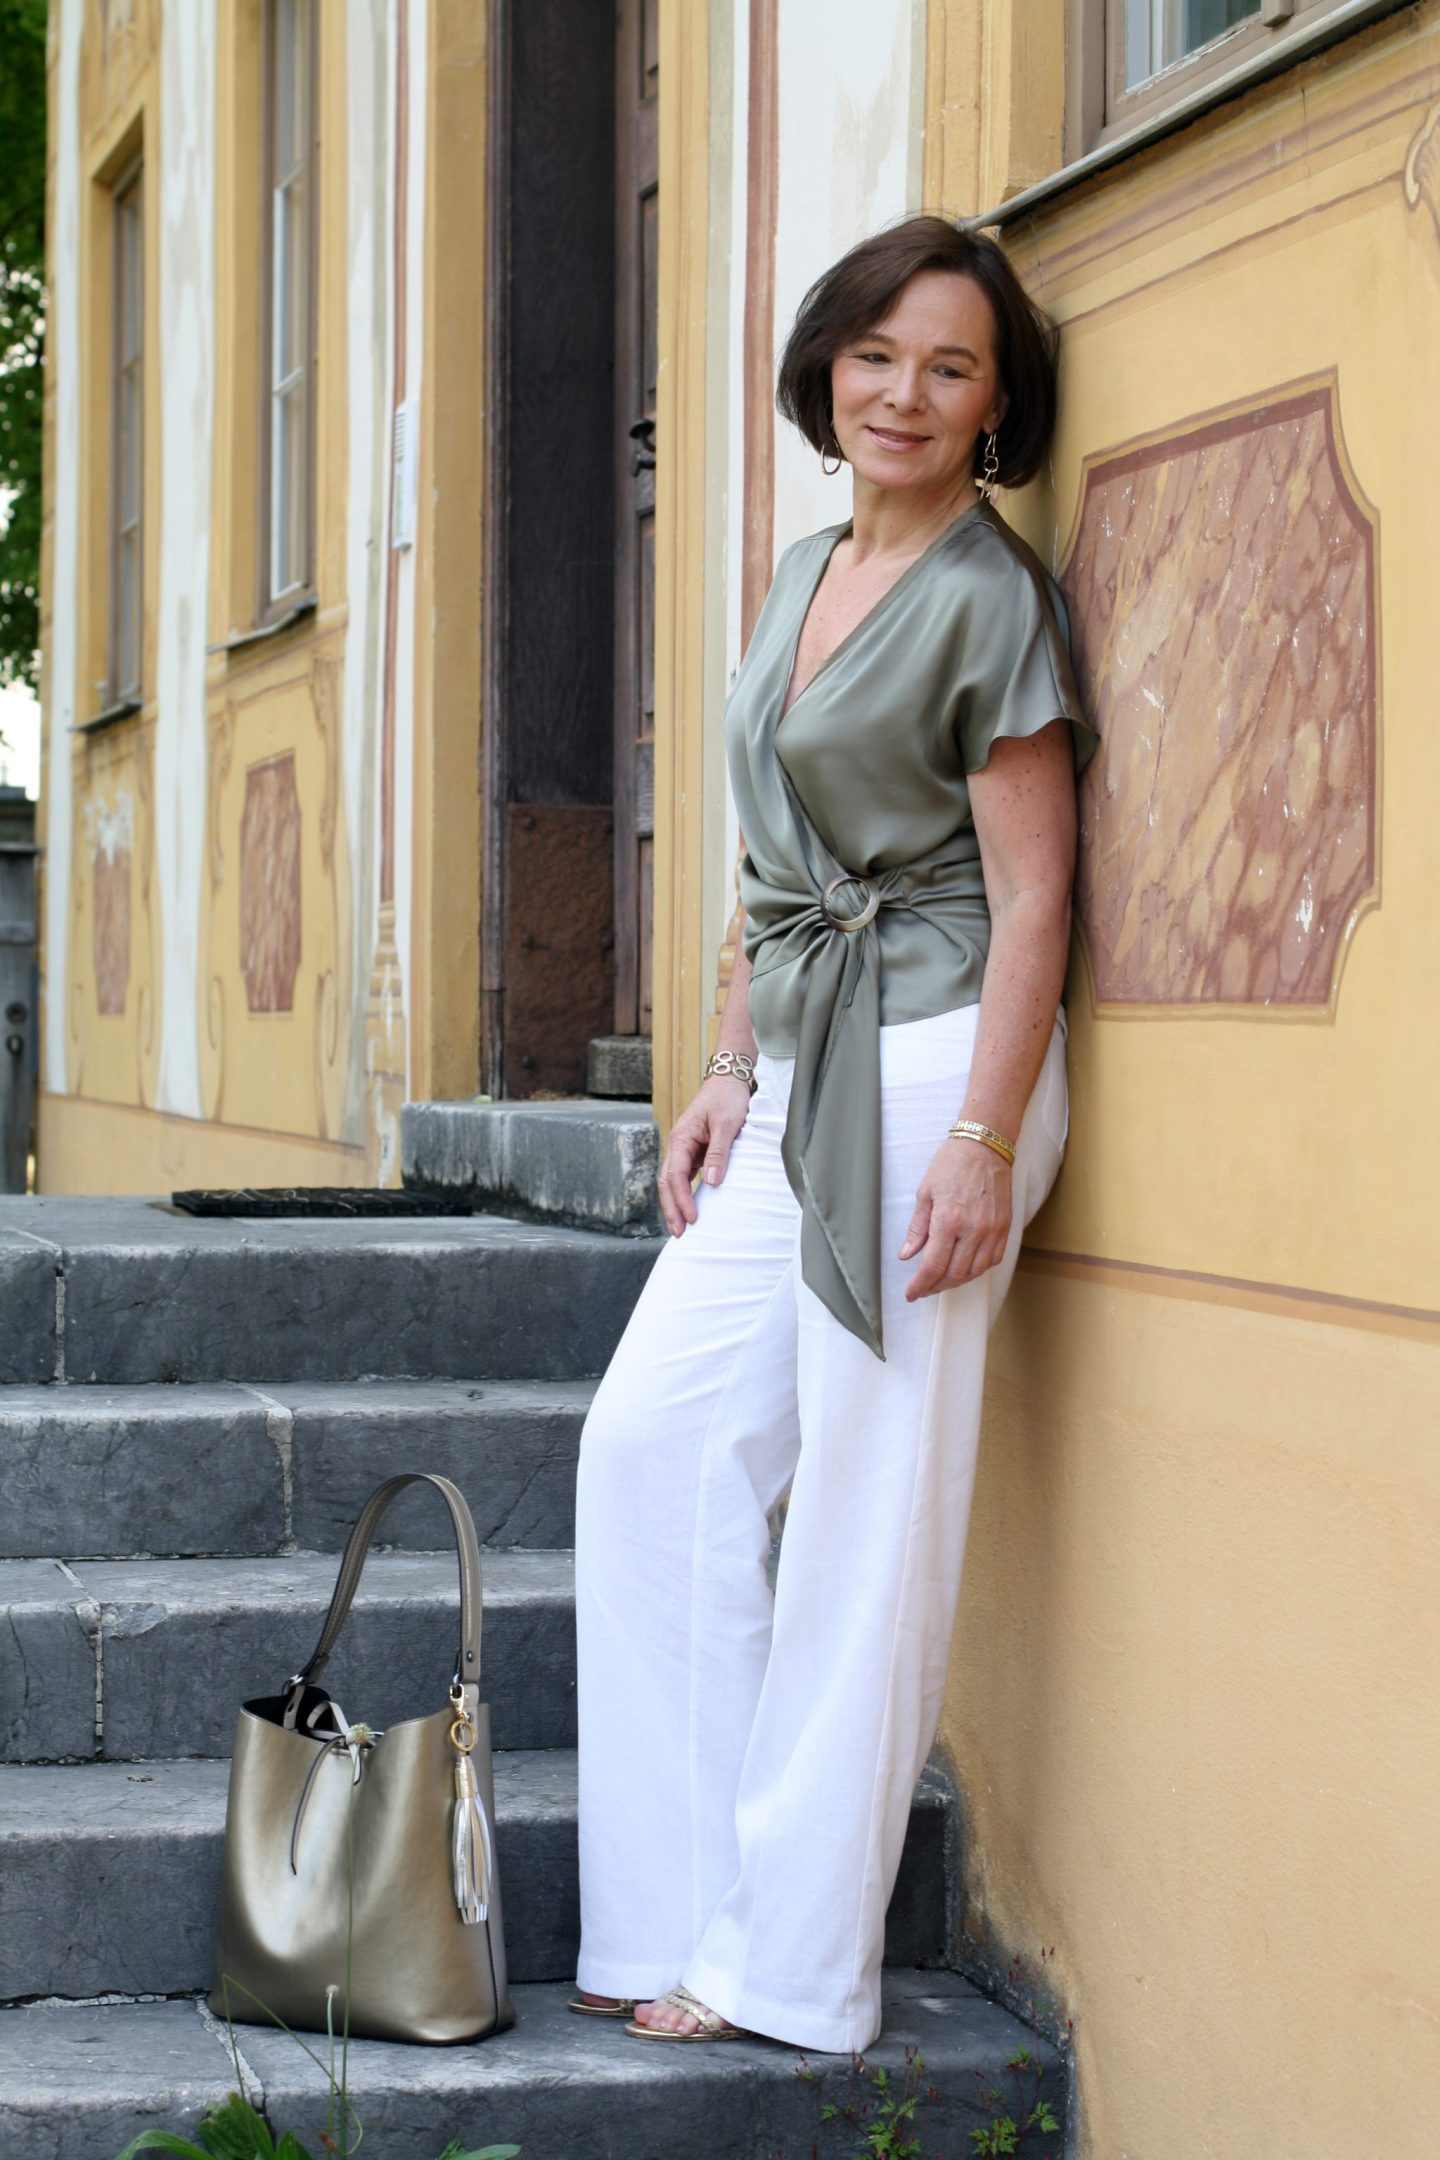 Satintop Leinenhose Sommer LadyofStyle